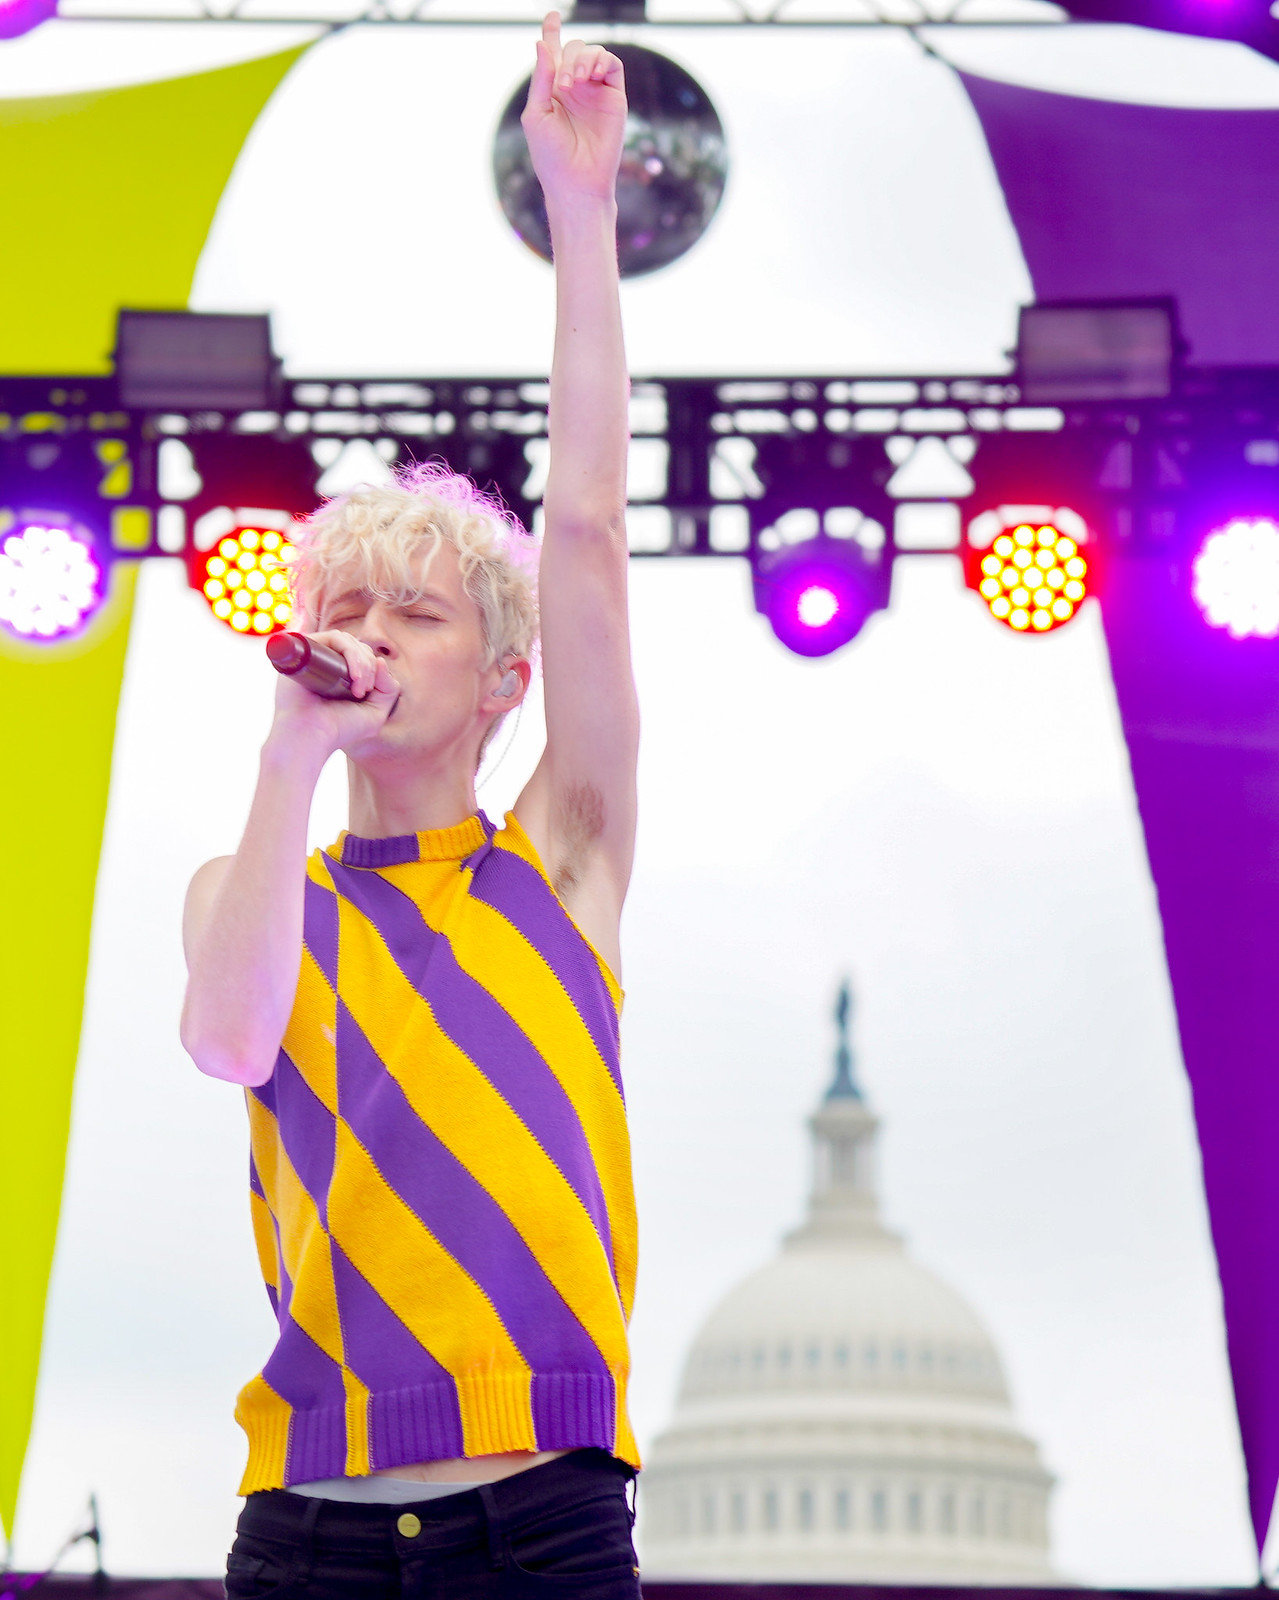 2018.06.10 Troye Sivan at Capital Pride w Sony A7III, Washington, DC USA 03467